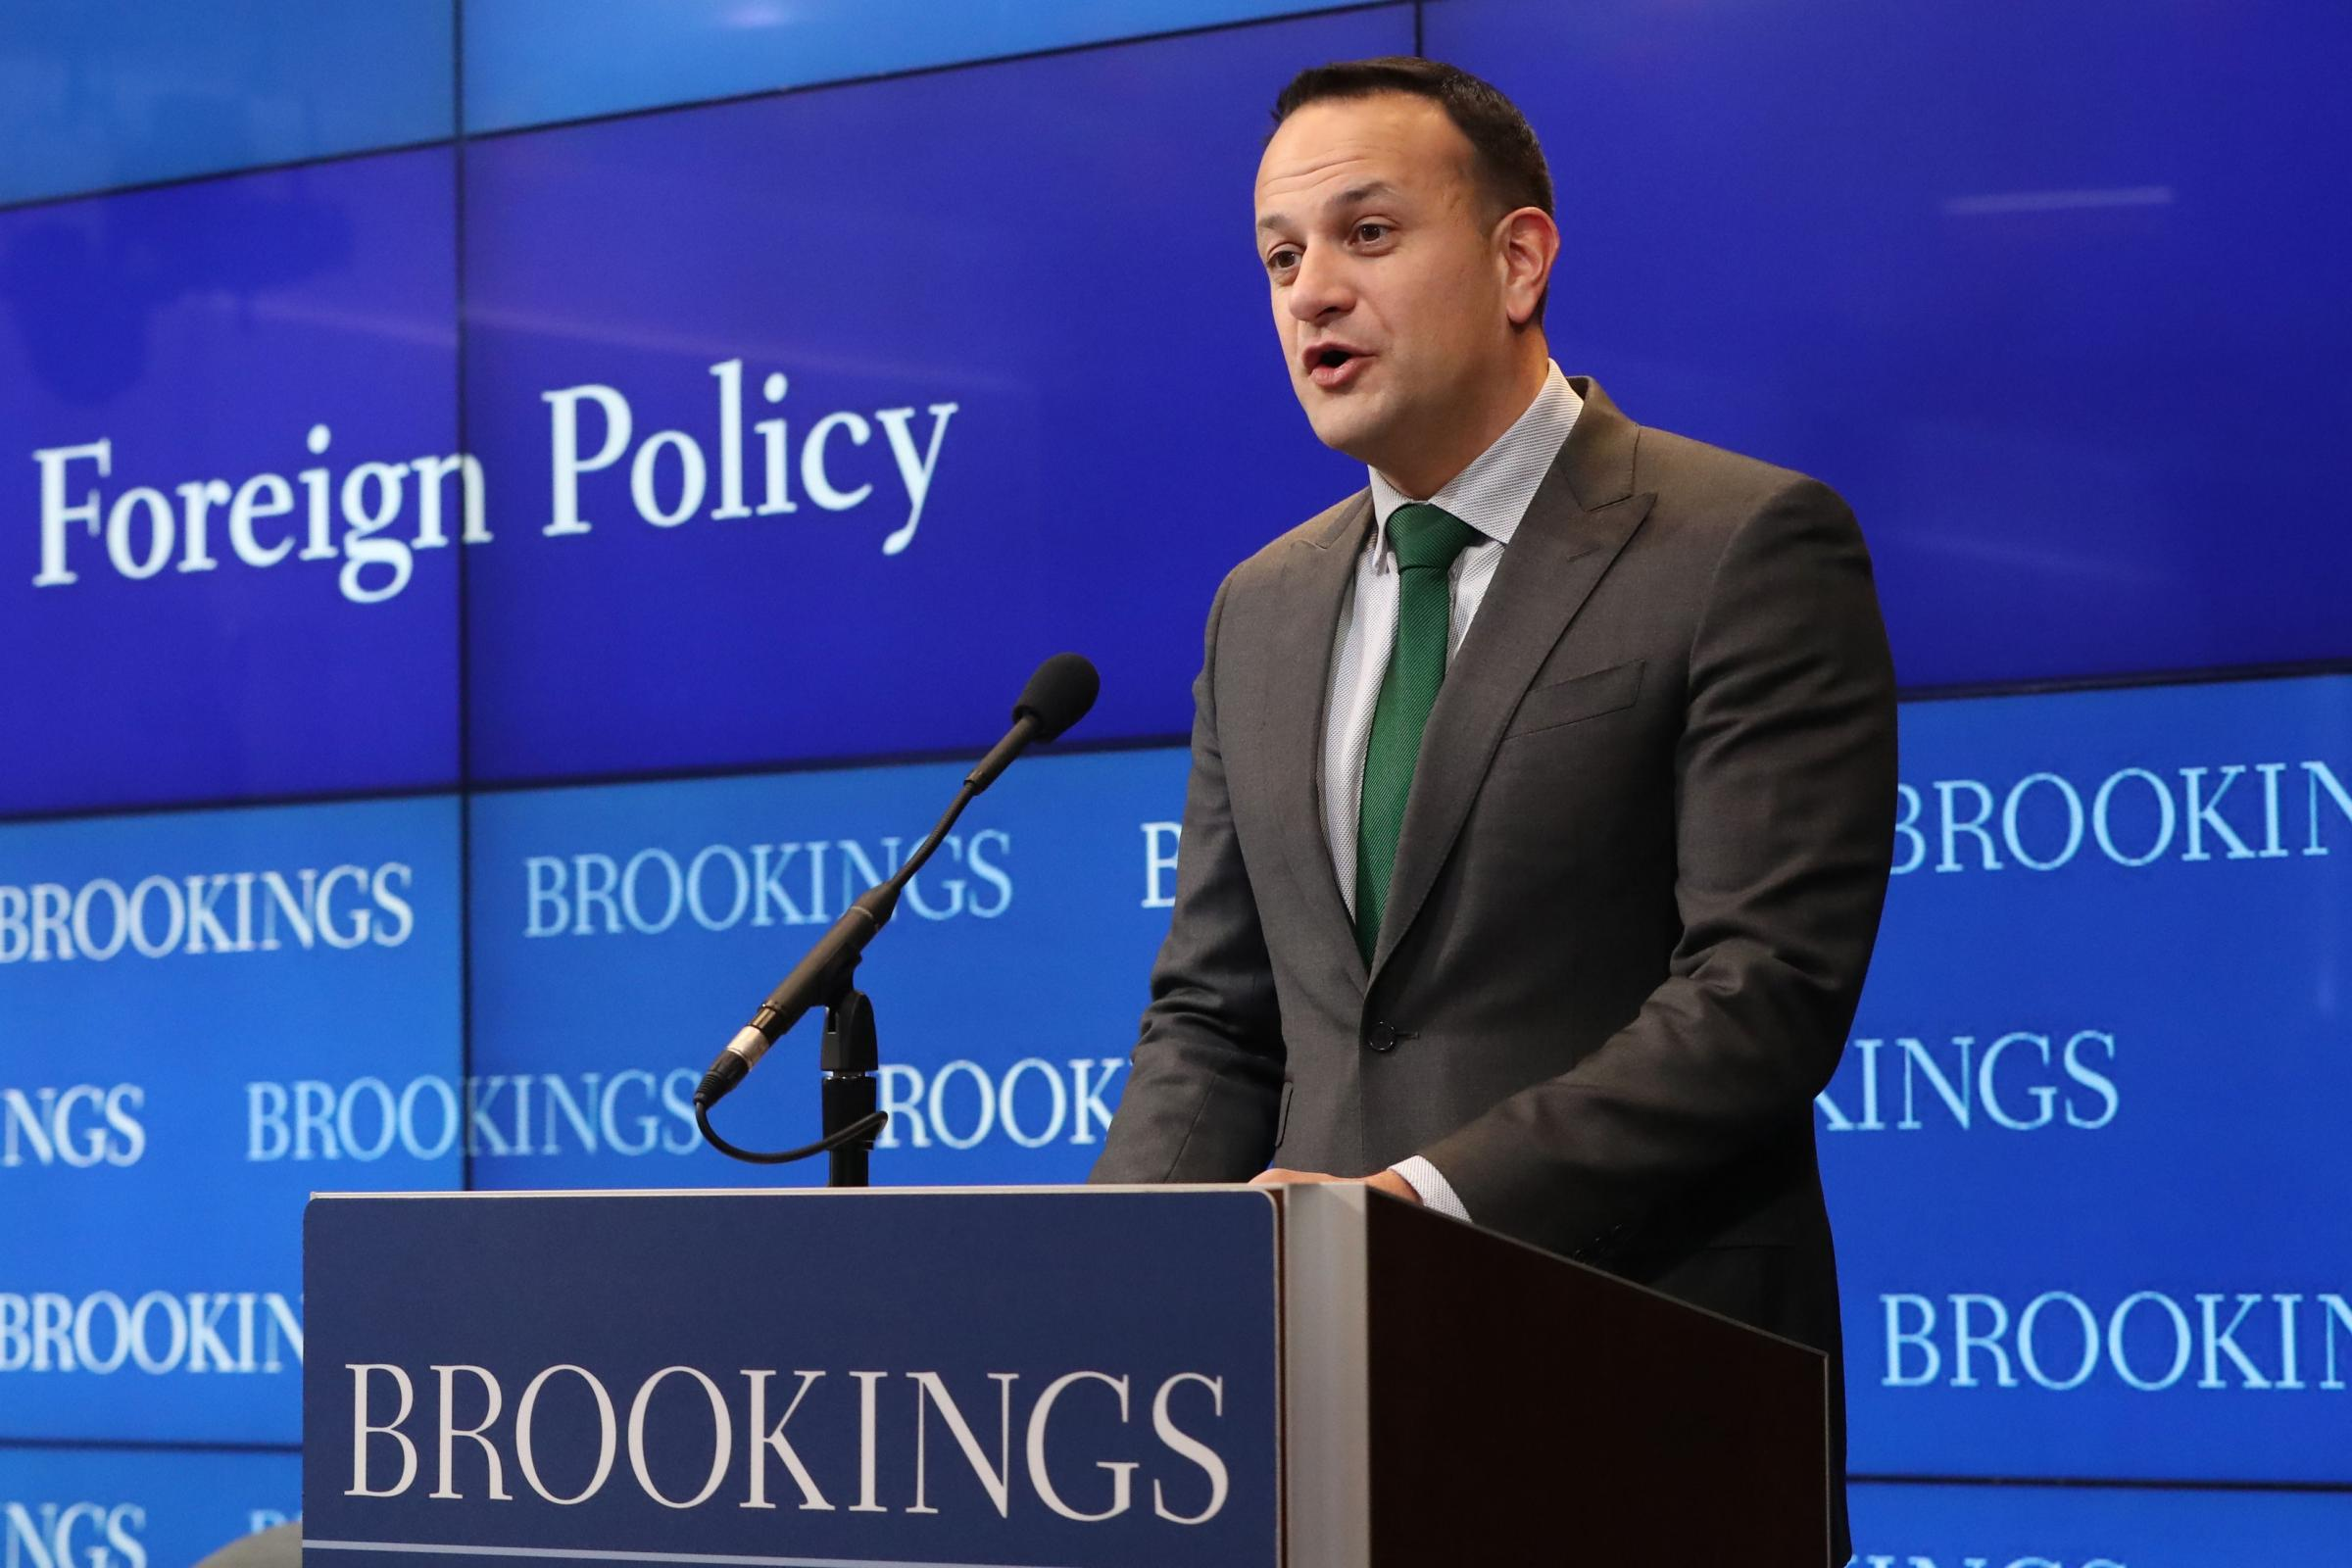 Taoiseach Leo Varadkar speaks at the Brookings Institute in Washington DC (Niall Carson/PA)